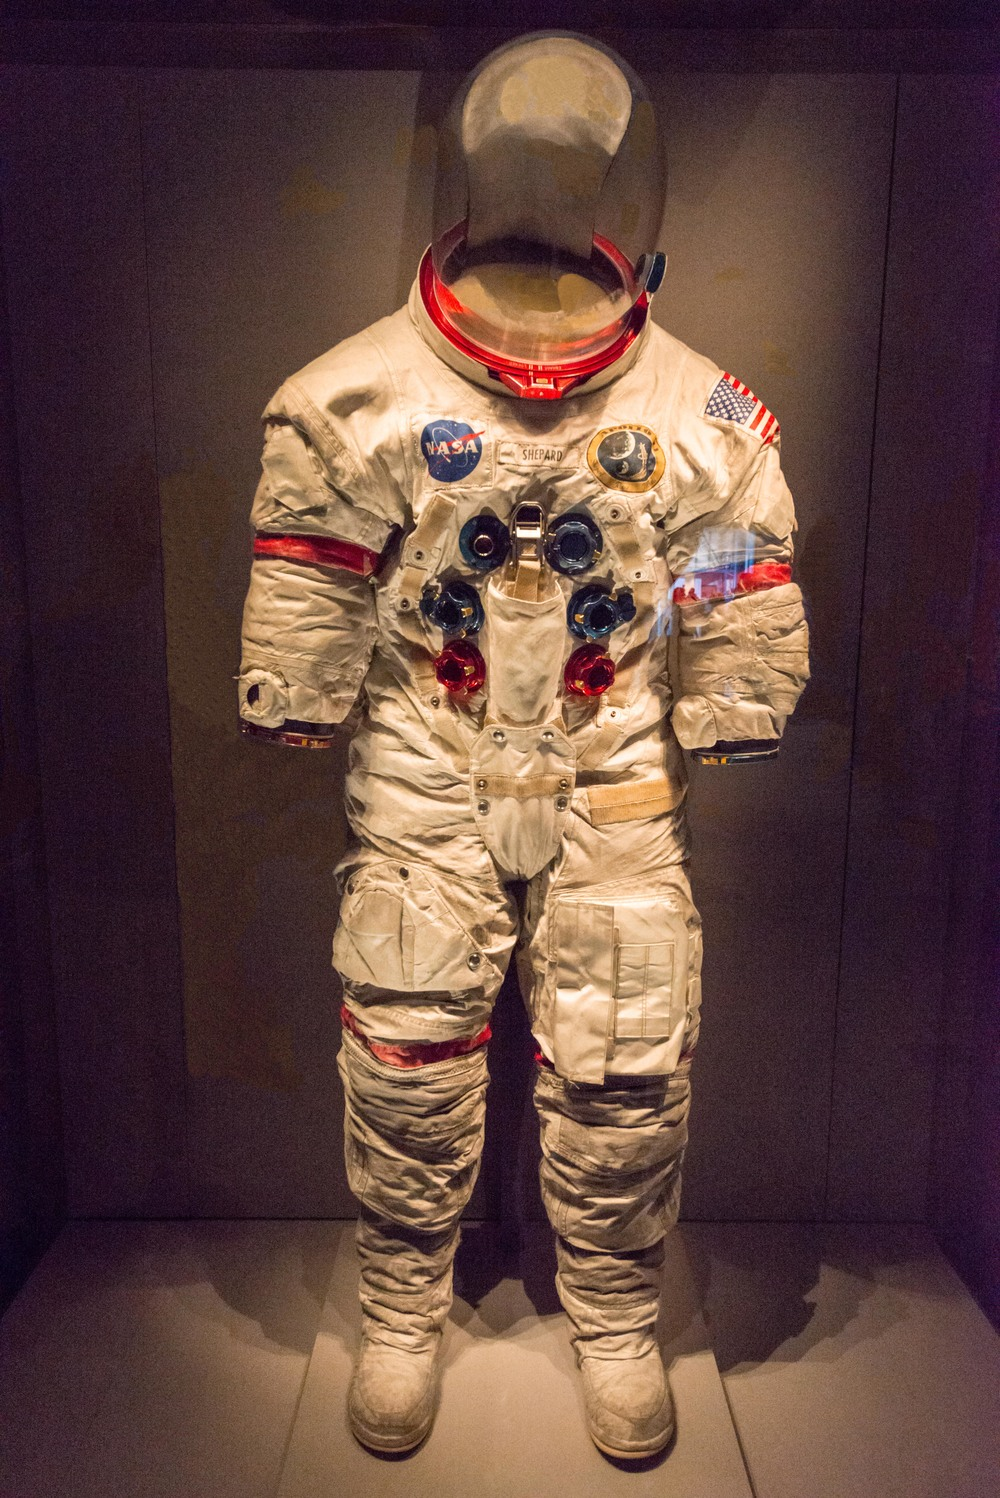 Alan Shepard's custom-made original A7-L spacesuit from the Apollo program.